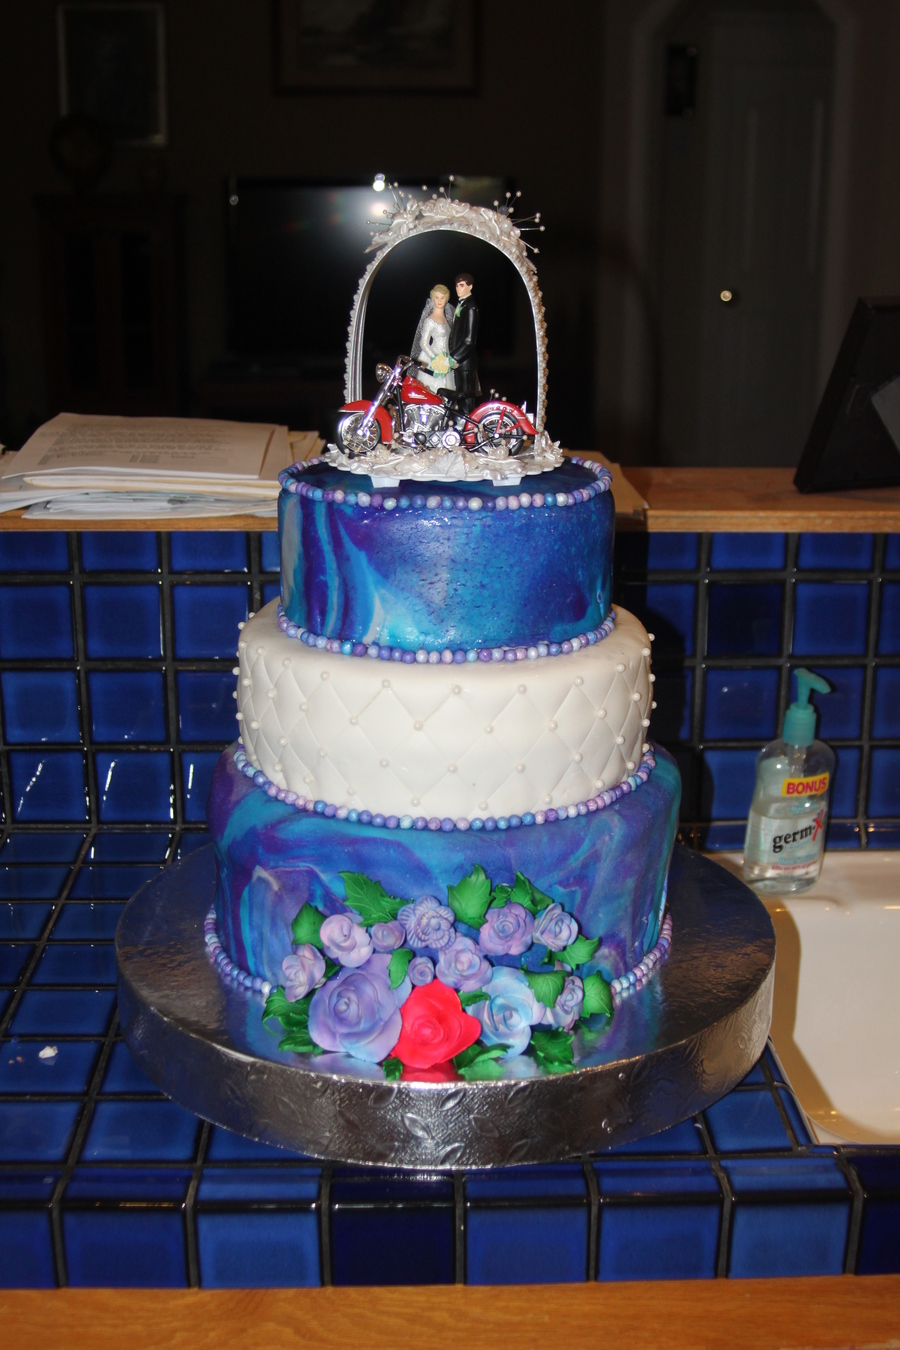 Tied Dyed Wedding Cake And Don't Forget The Harley on Cake Central